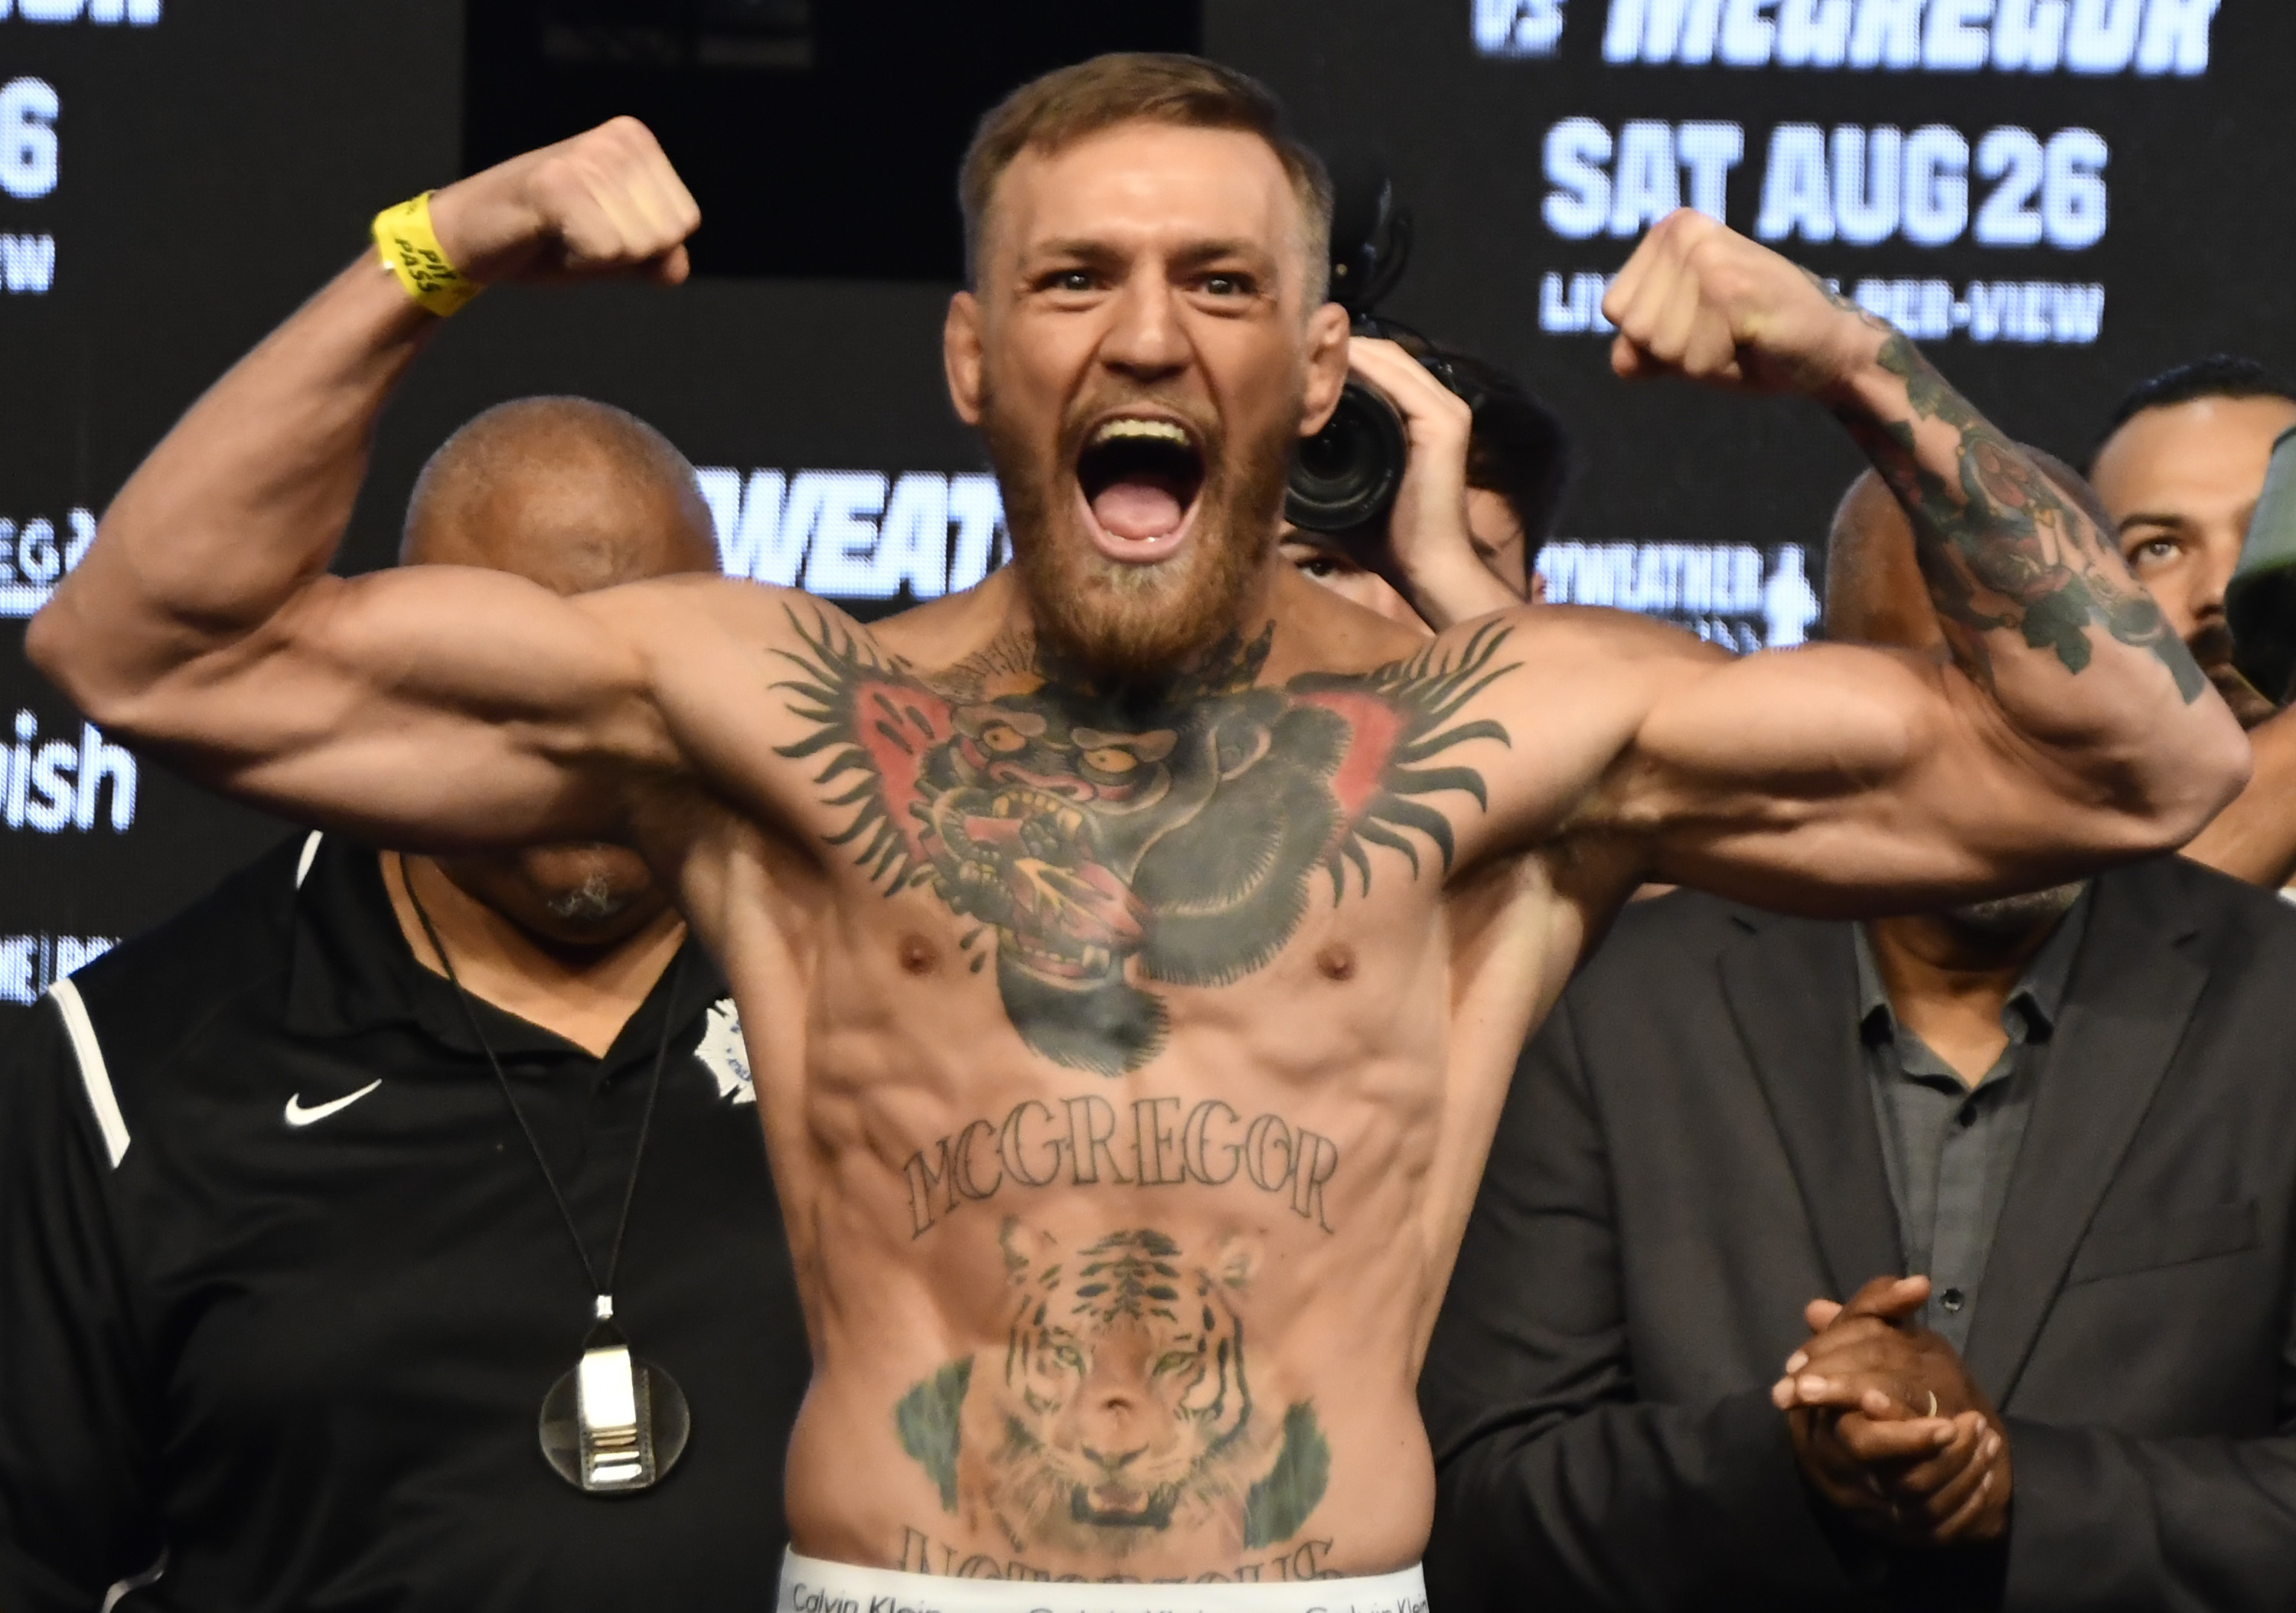 McGregor fight second richest ever